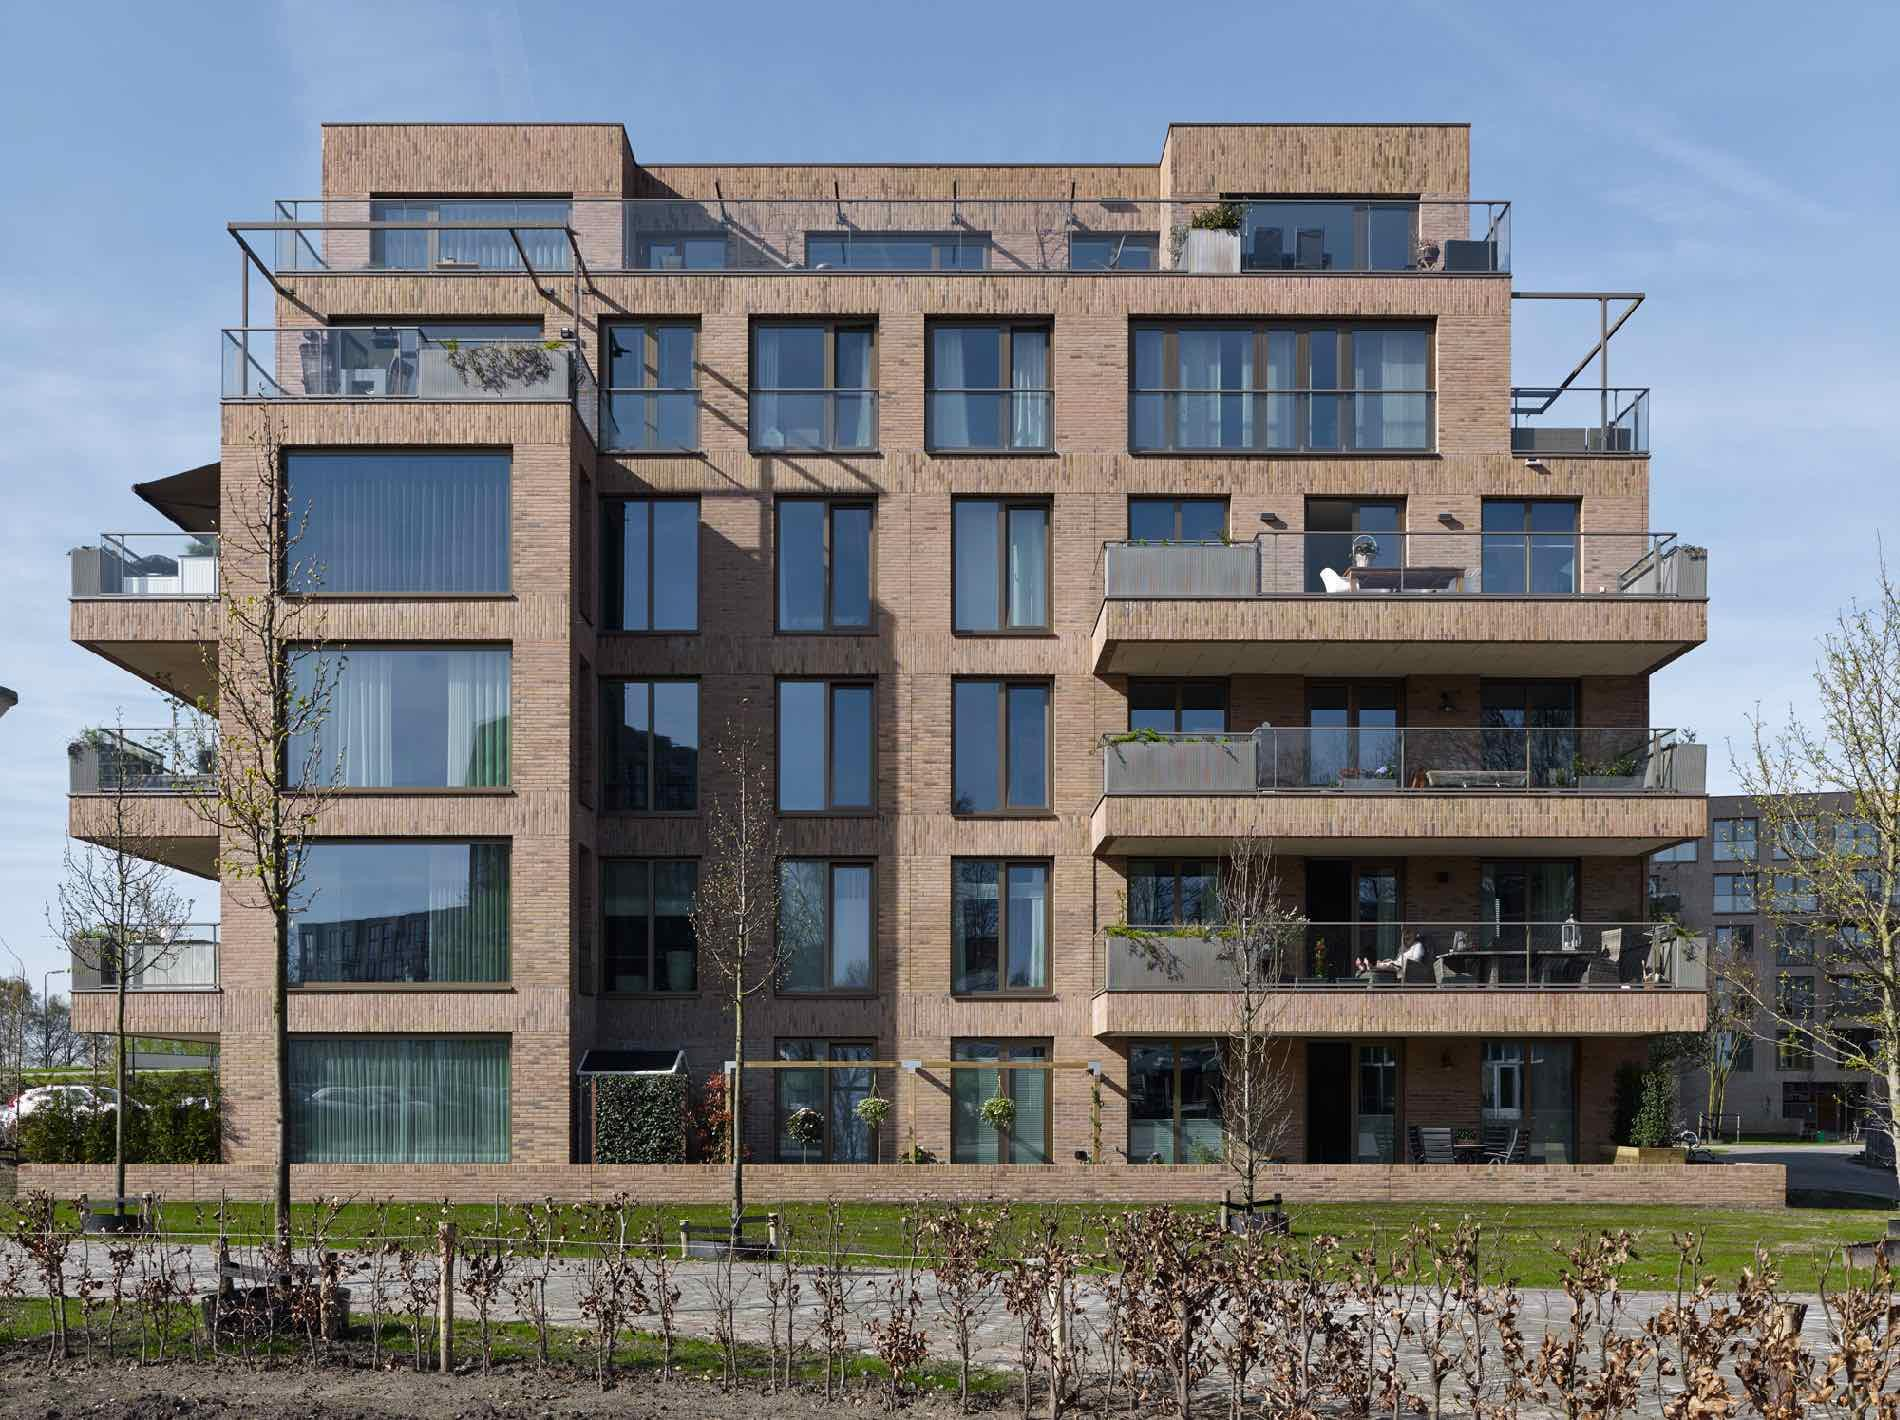 Urban Villa's 2 Willemspoort Den Bosch - office winhov